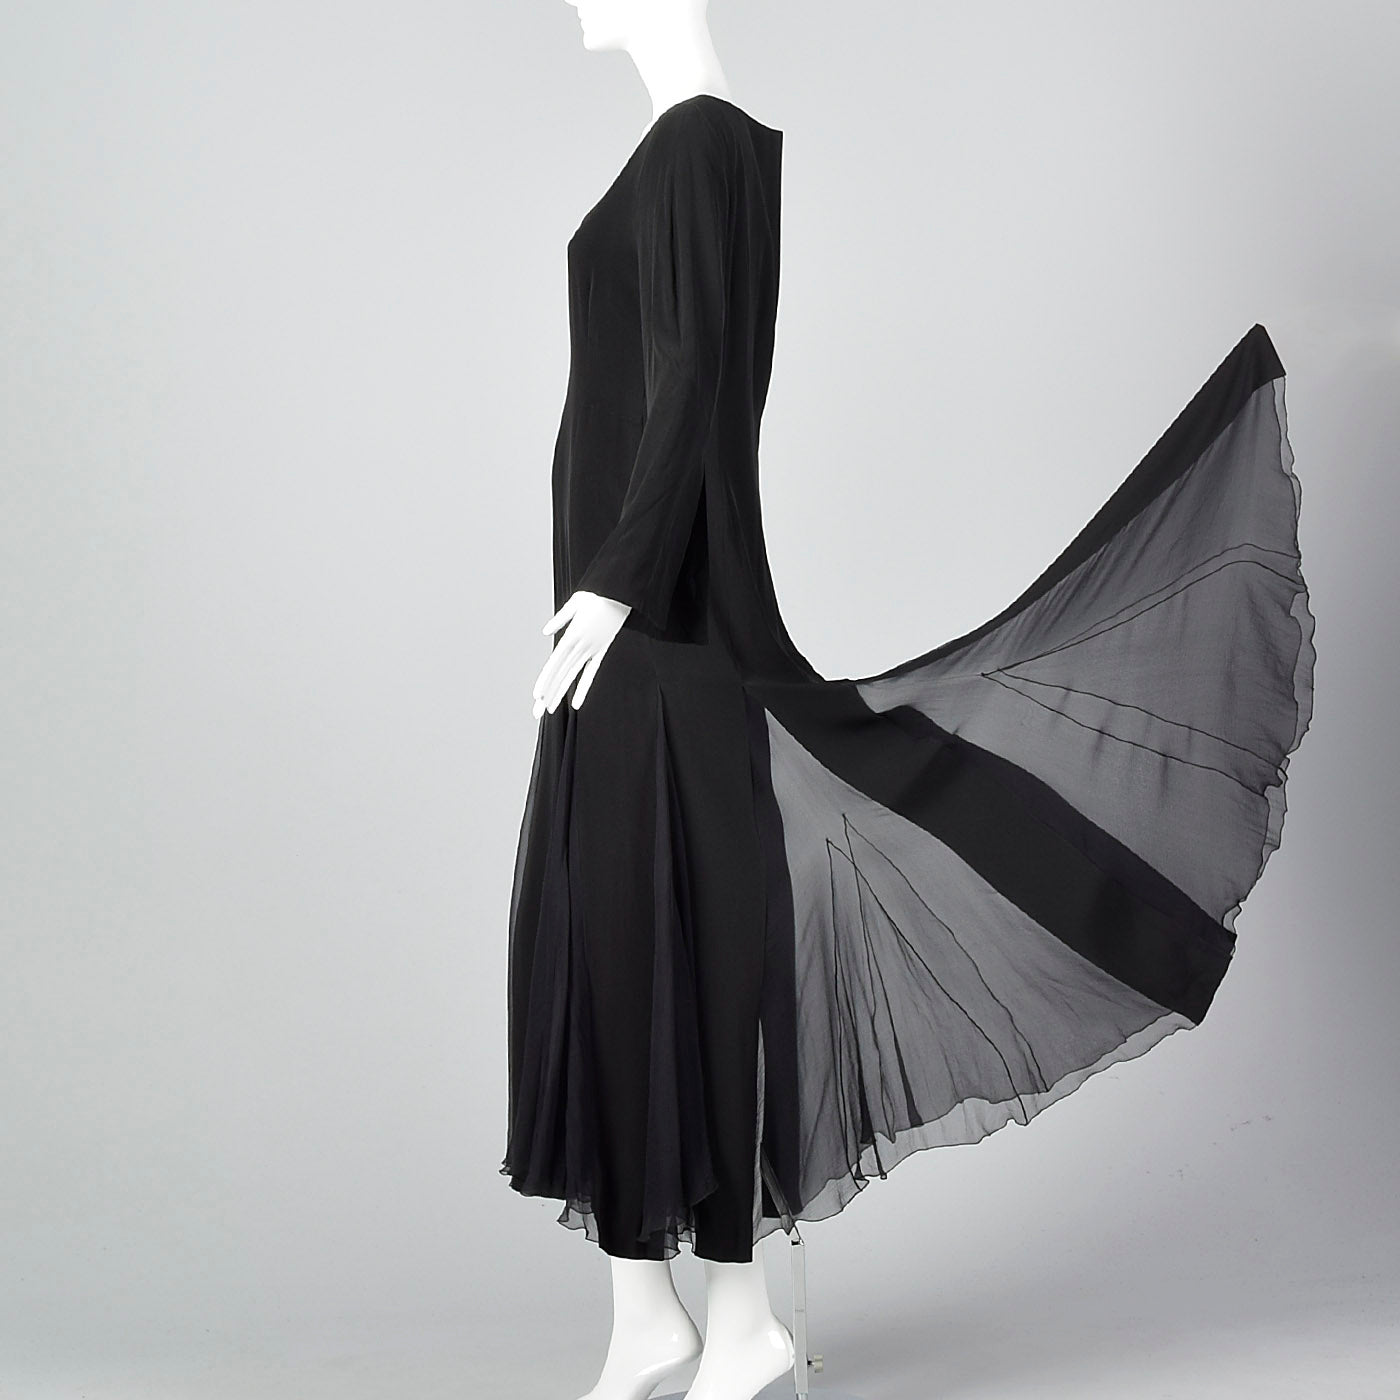 1990s Jil Sander Sexy Gothic Dress with Sheer Silk Panel Skirt